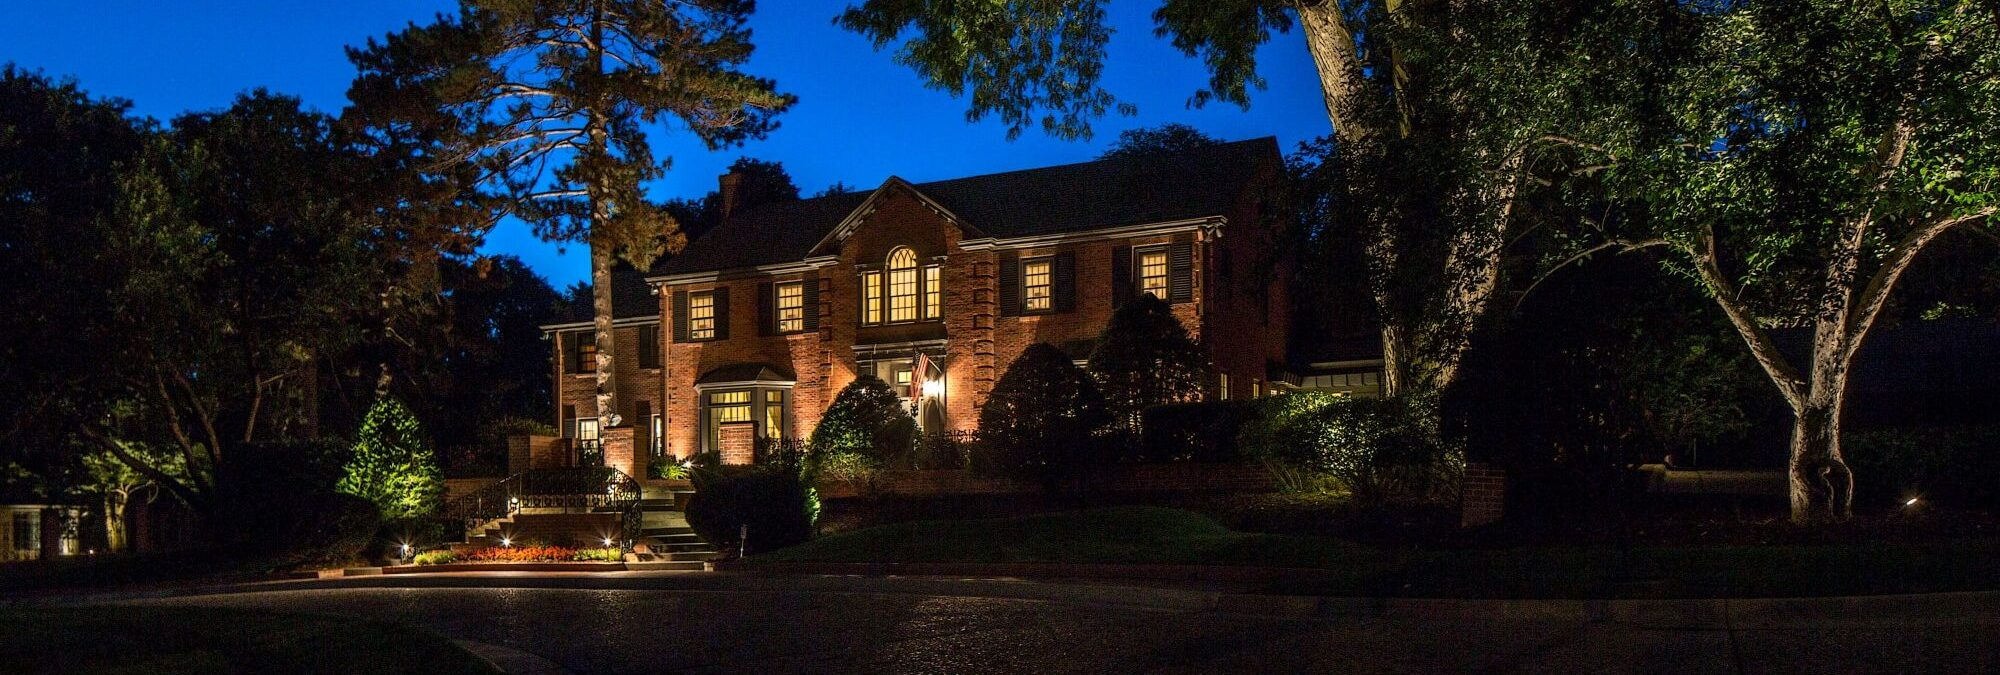 Residential Security Lighting Omaha NE